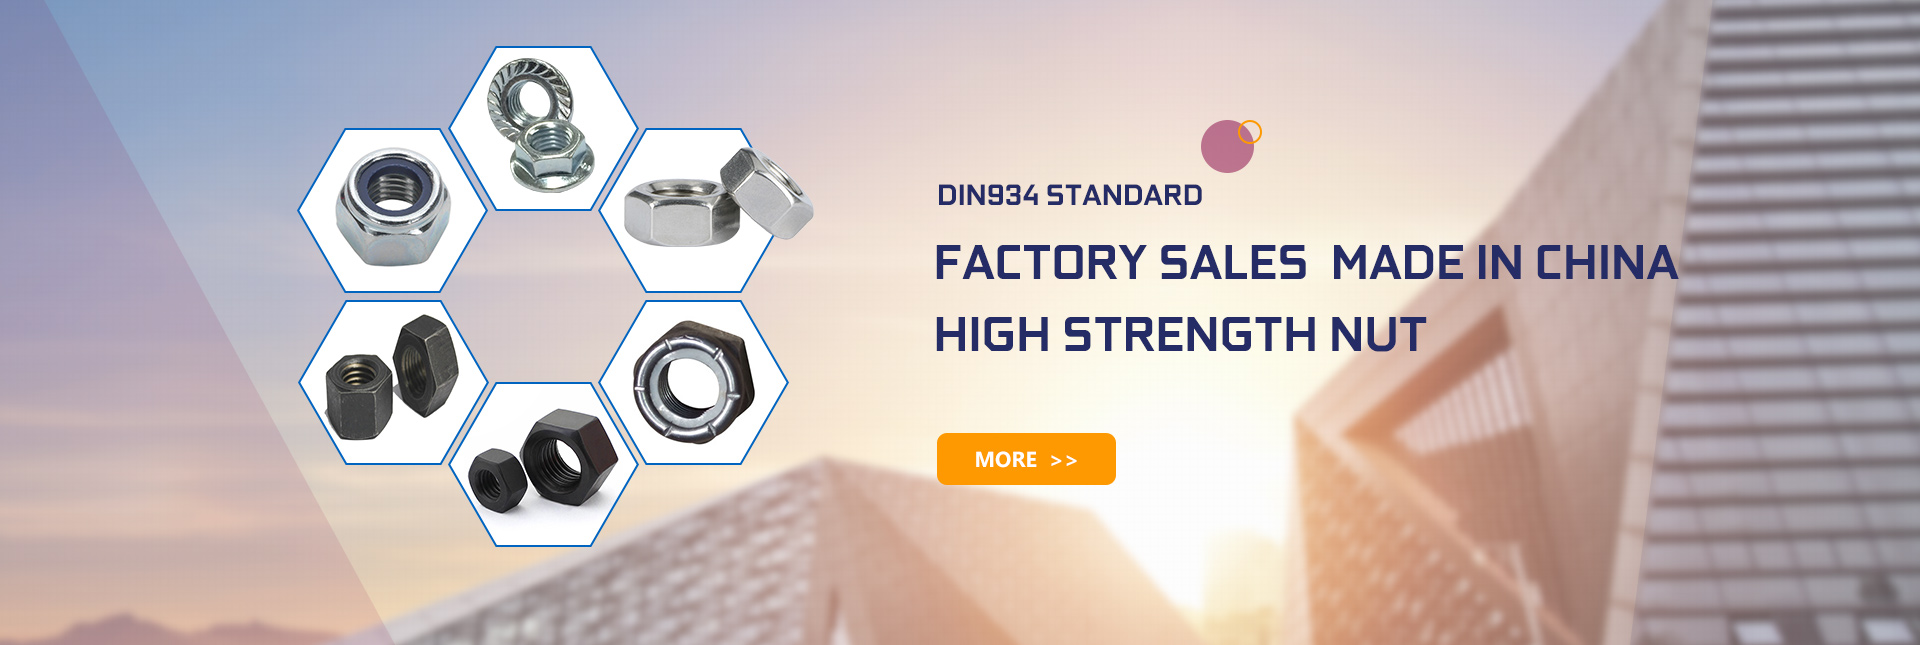 factory sales  made in China   high strength nut